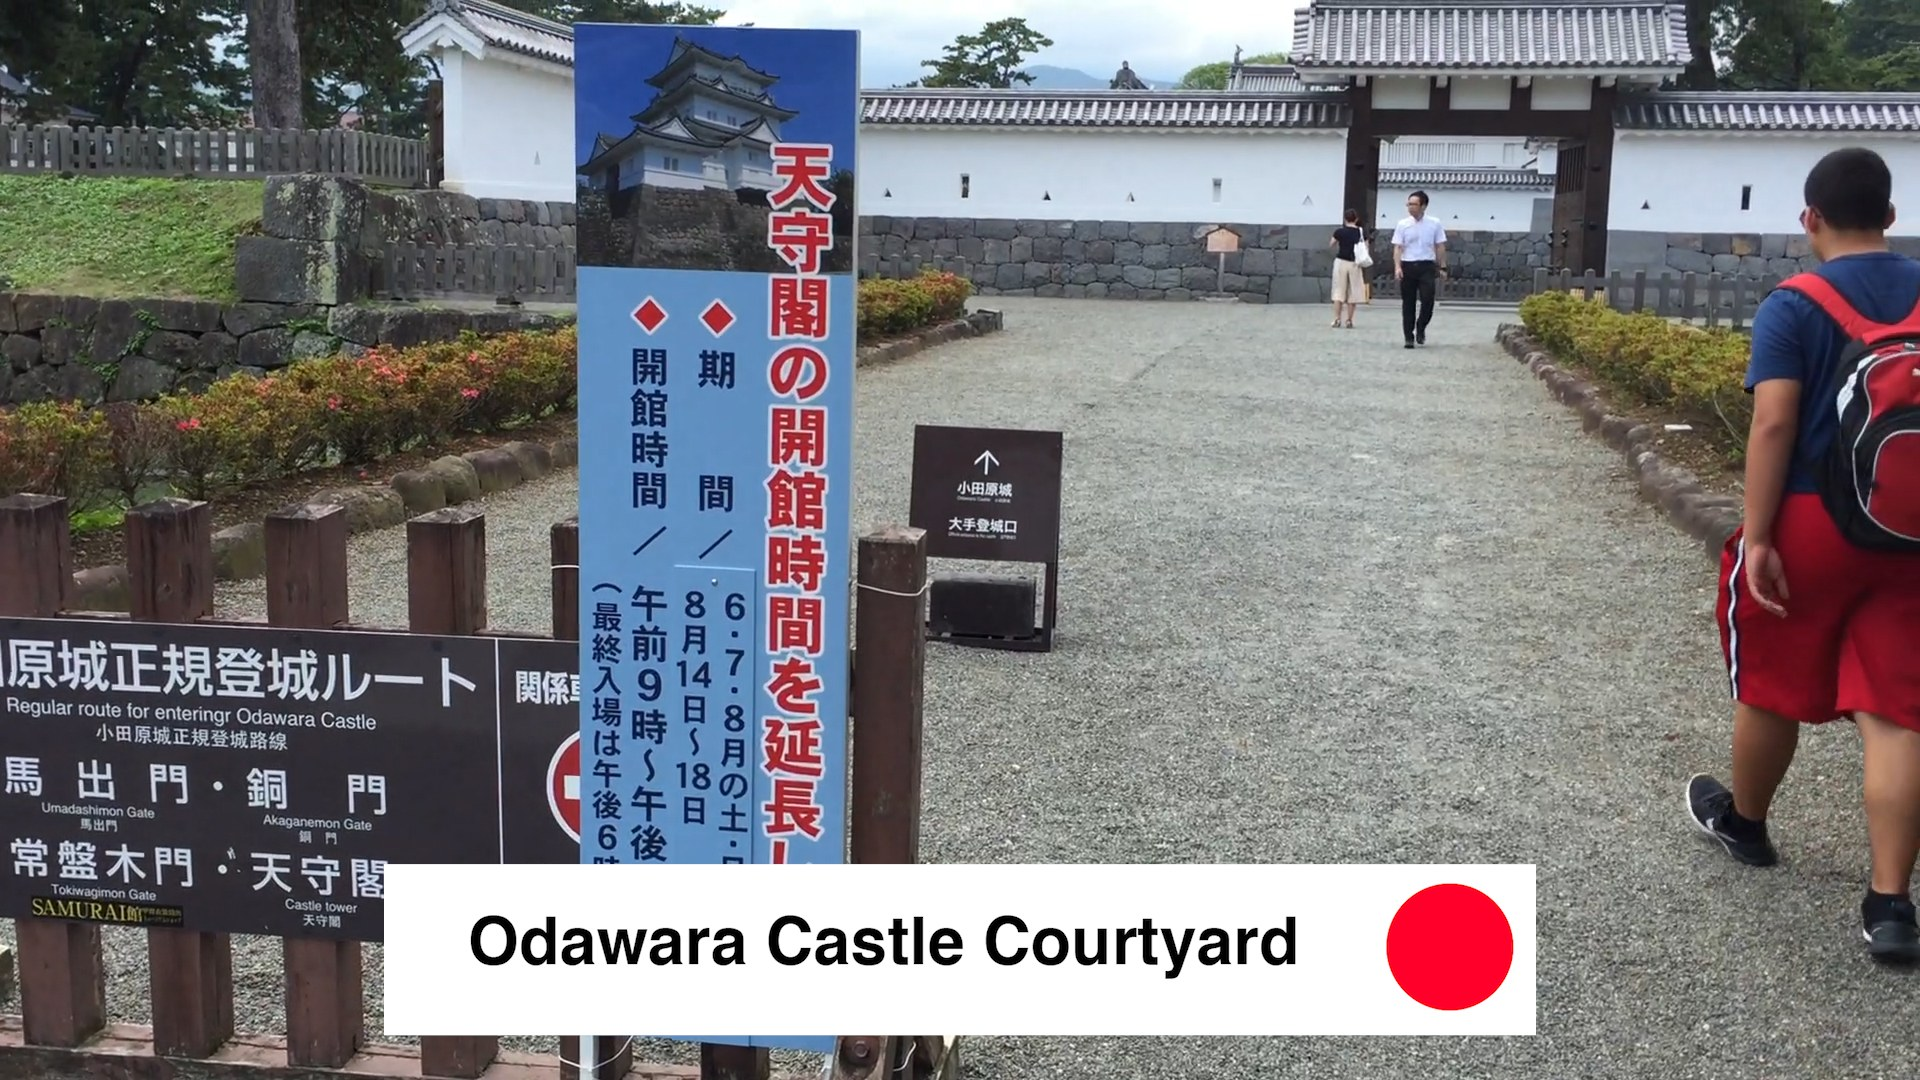 Odawara Castle Courtyard - Odawara Castle Japan Guide Review Video - 9 Reasons To See Odawara Castle Kanagawa Japan 🇯🇵 🏯 🌸